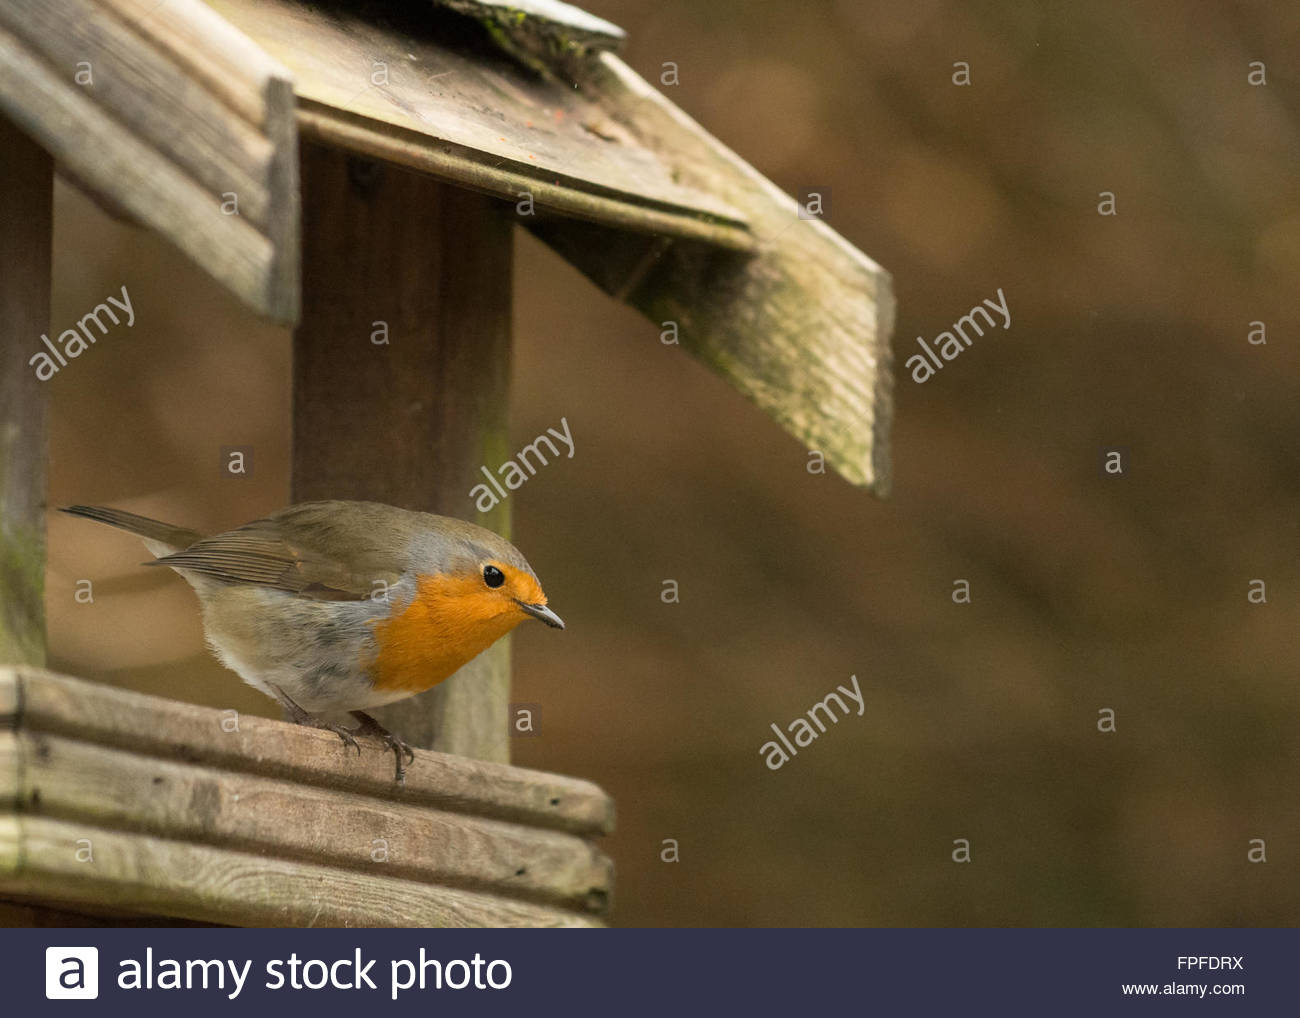 European Robin (Erithacus rubecula) on wooden bird table with copy space - Stock Image